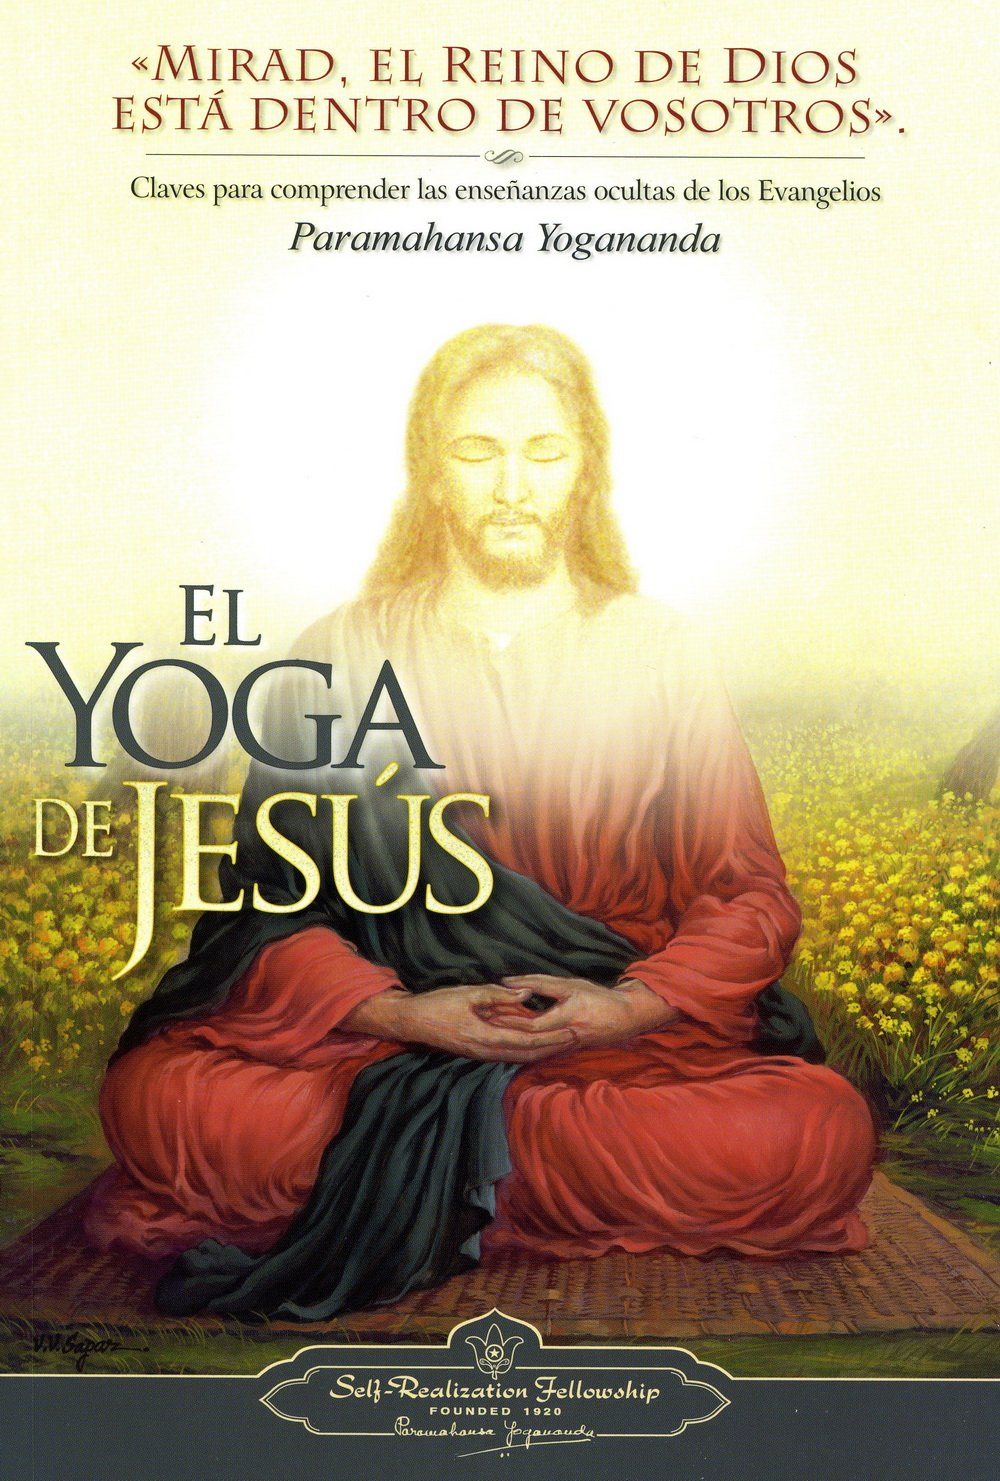 El Yoga de Jesus - The Yoga of Jesus, Spanish (Spanish Edition)